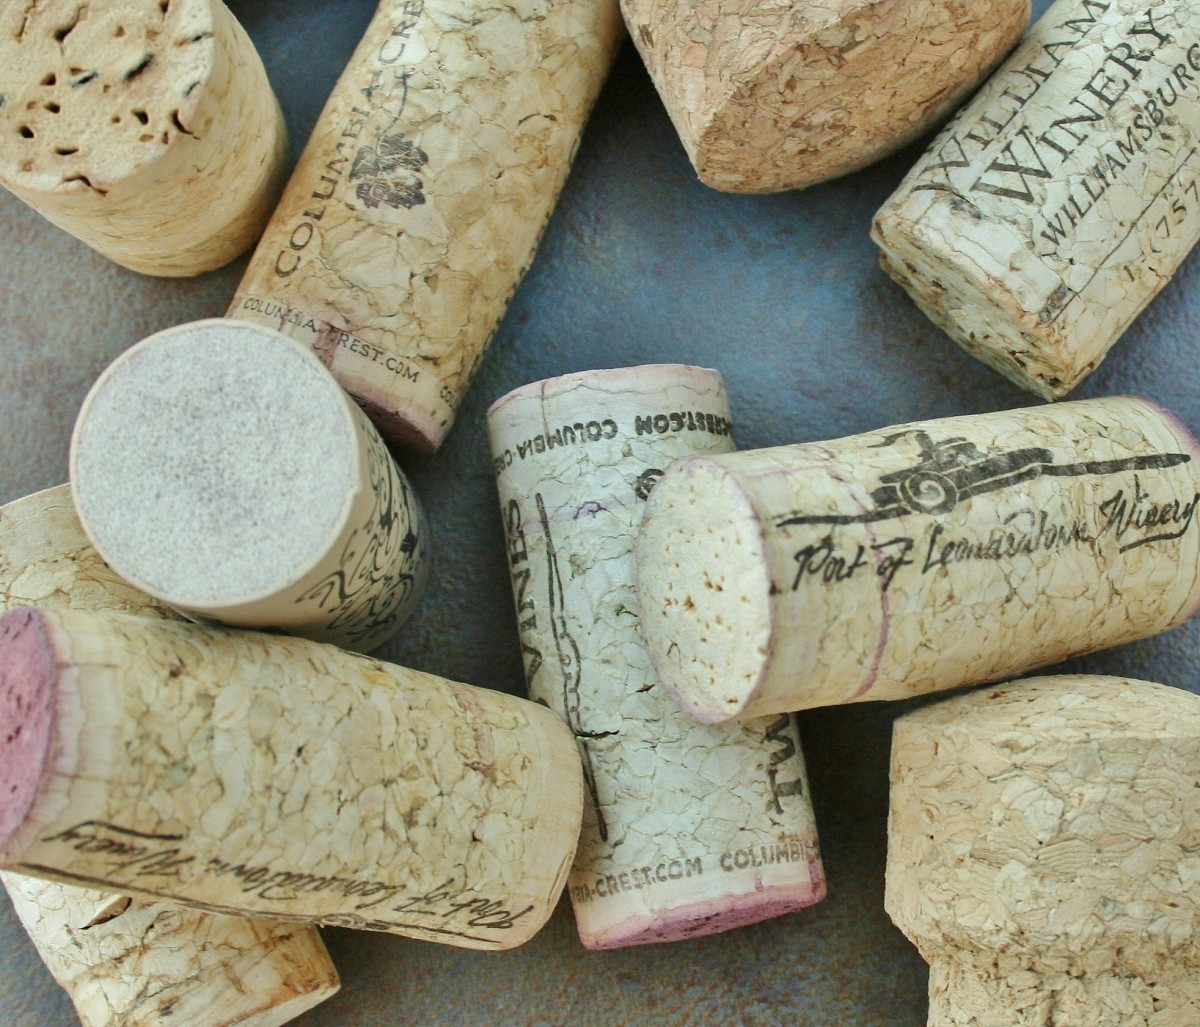 What can you do with old wine corks? A surprising number of things.